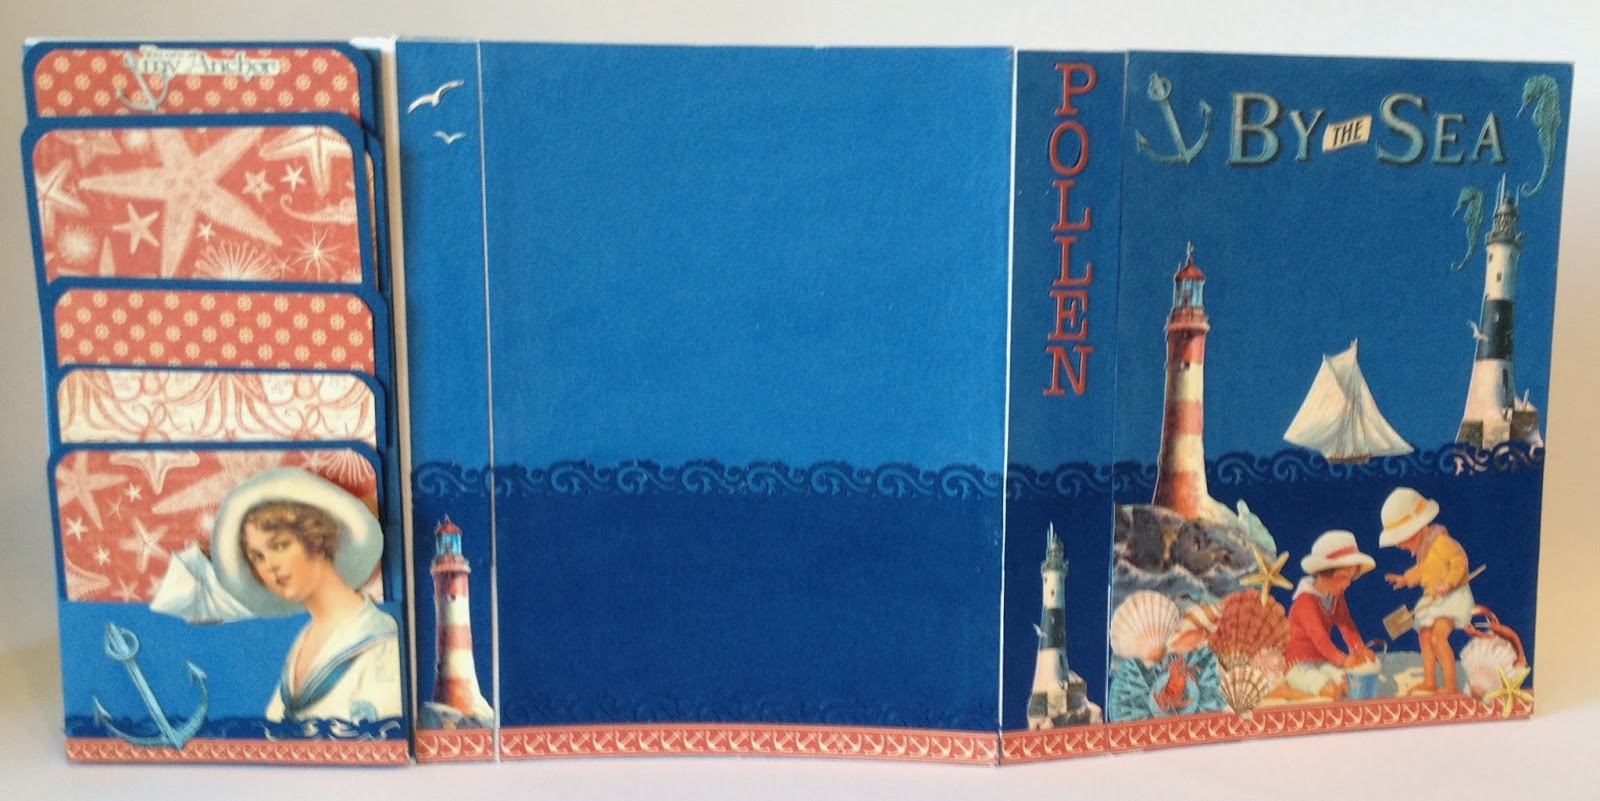 How to make scrapbook album cover - In The Next Part I Will Show How To Decorate The Cover And Inside With Some Fussy Cut Outs